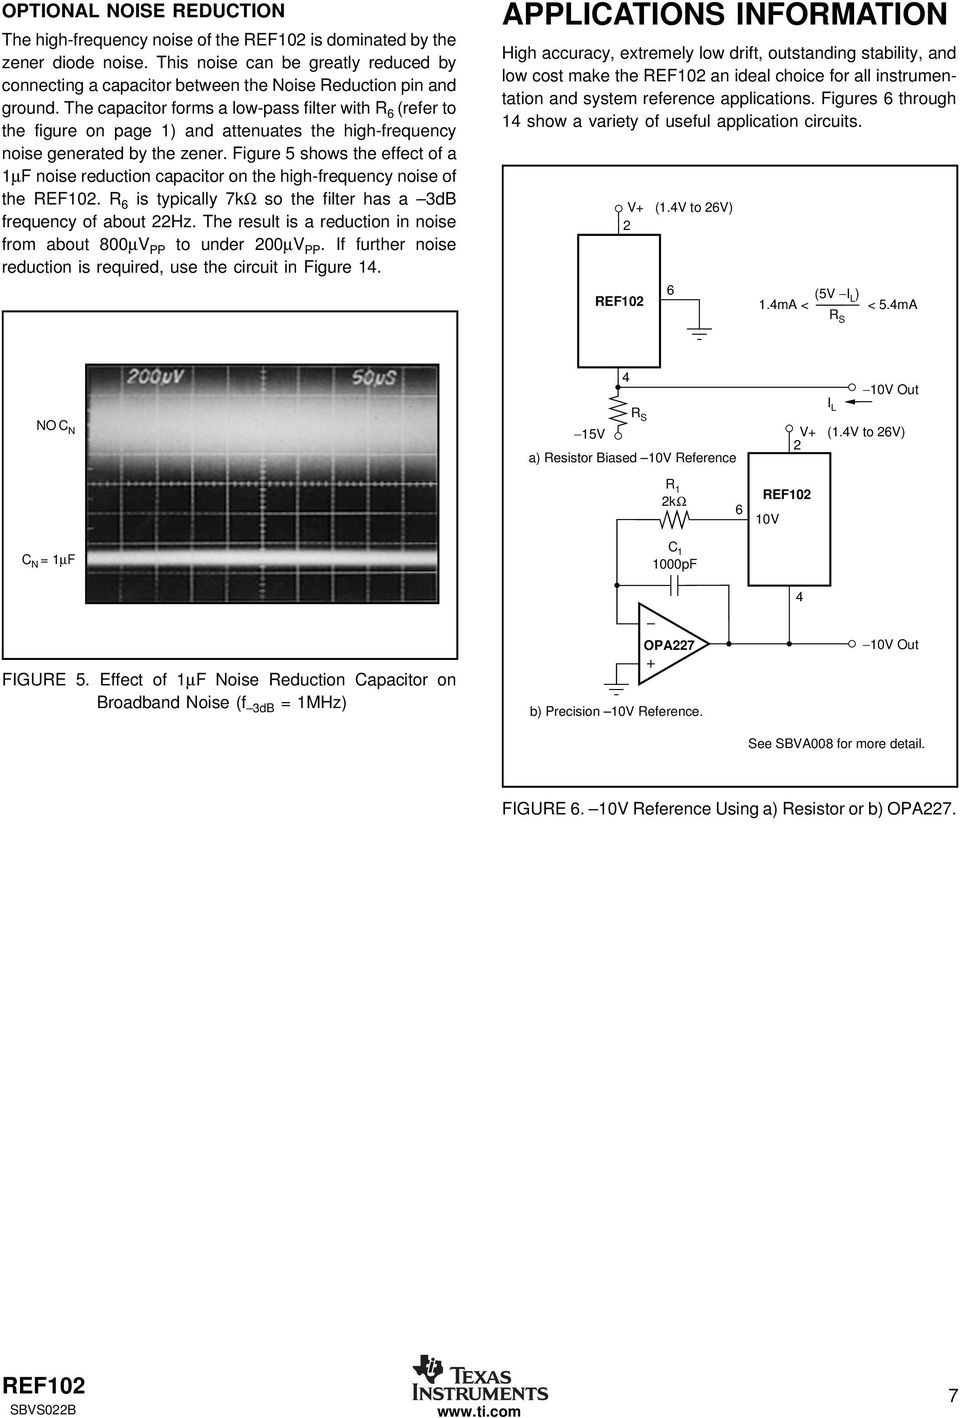 10v Precision Voltage Reference Pdf Gain 2 Of Amplifier Circuit Ina105 Amplifiercircuit The Capacitor Forms A Low Pass Filter With R Refer To Figure On